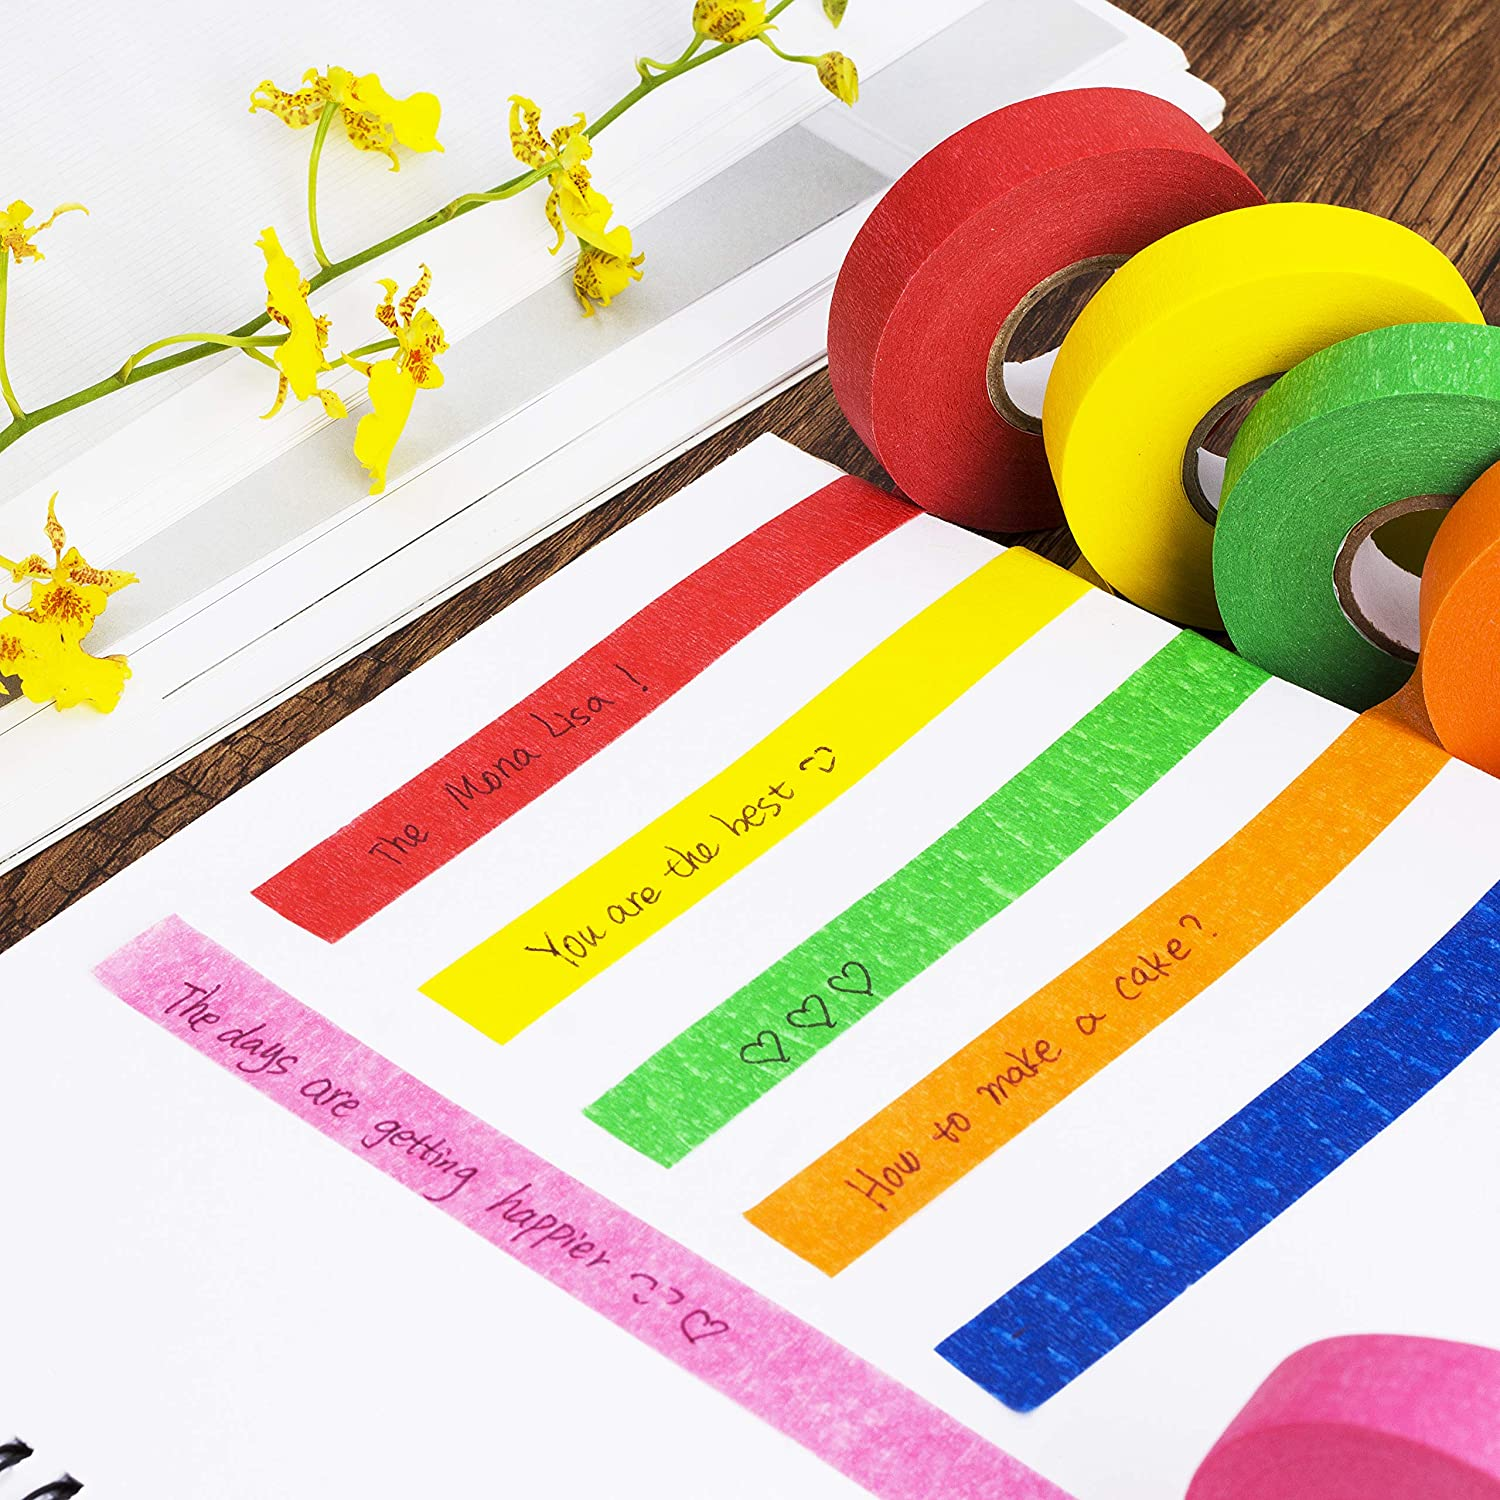 Colored Tape Art Tape Pen- Colored Masking Tape 6 Pack Drafting Tape Labeling Tape Artist Tape Paper Tape Mr Colored Painters Tape for Arts and Crafts Masking Tape Craft Tape Colorful Tape